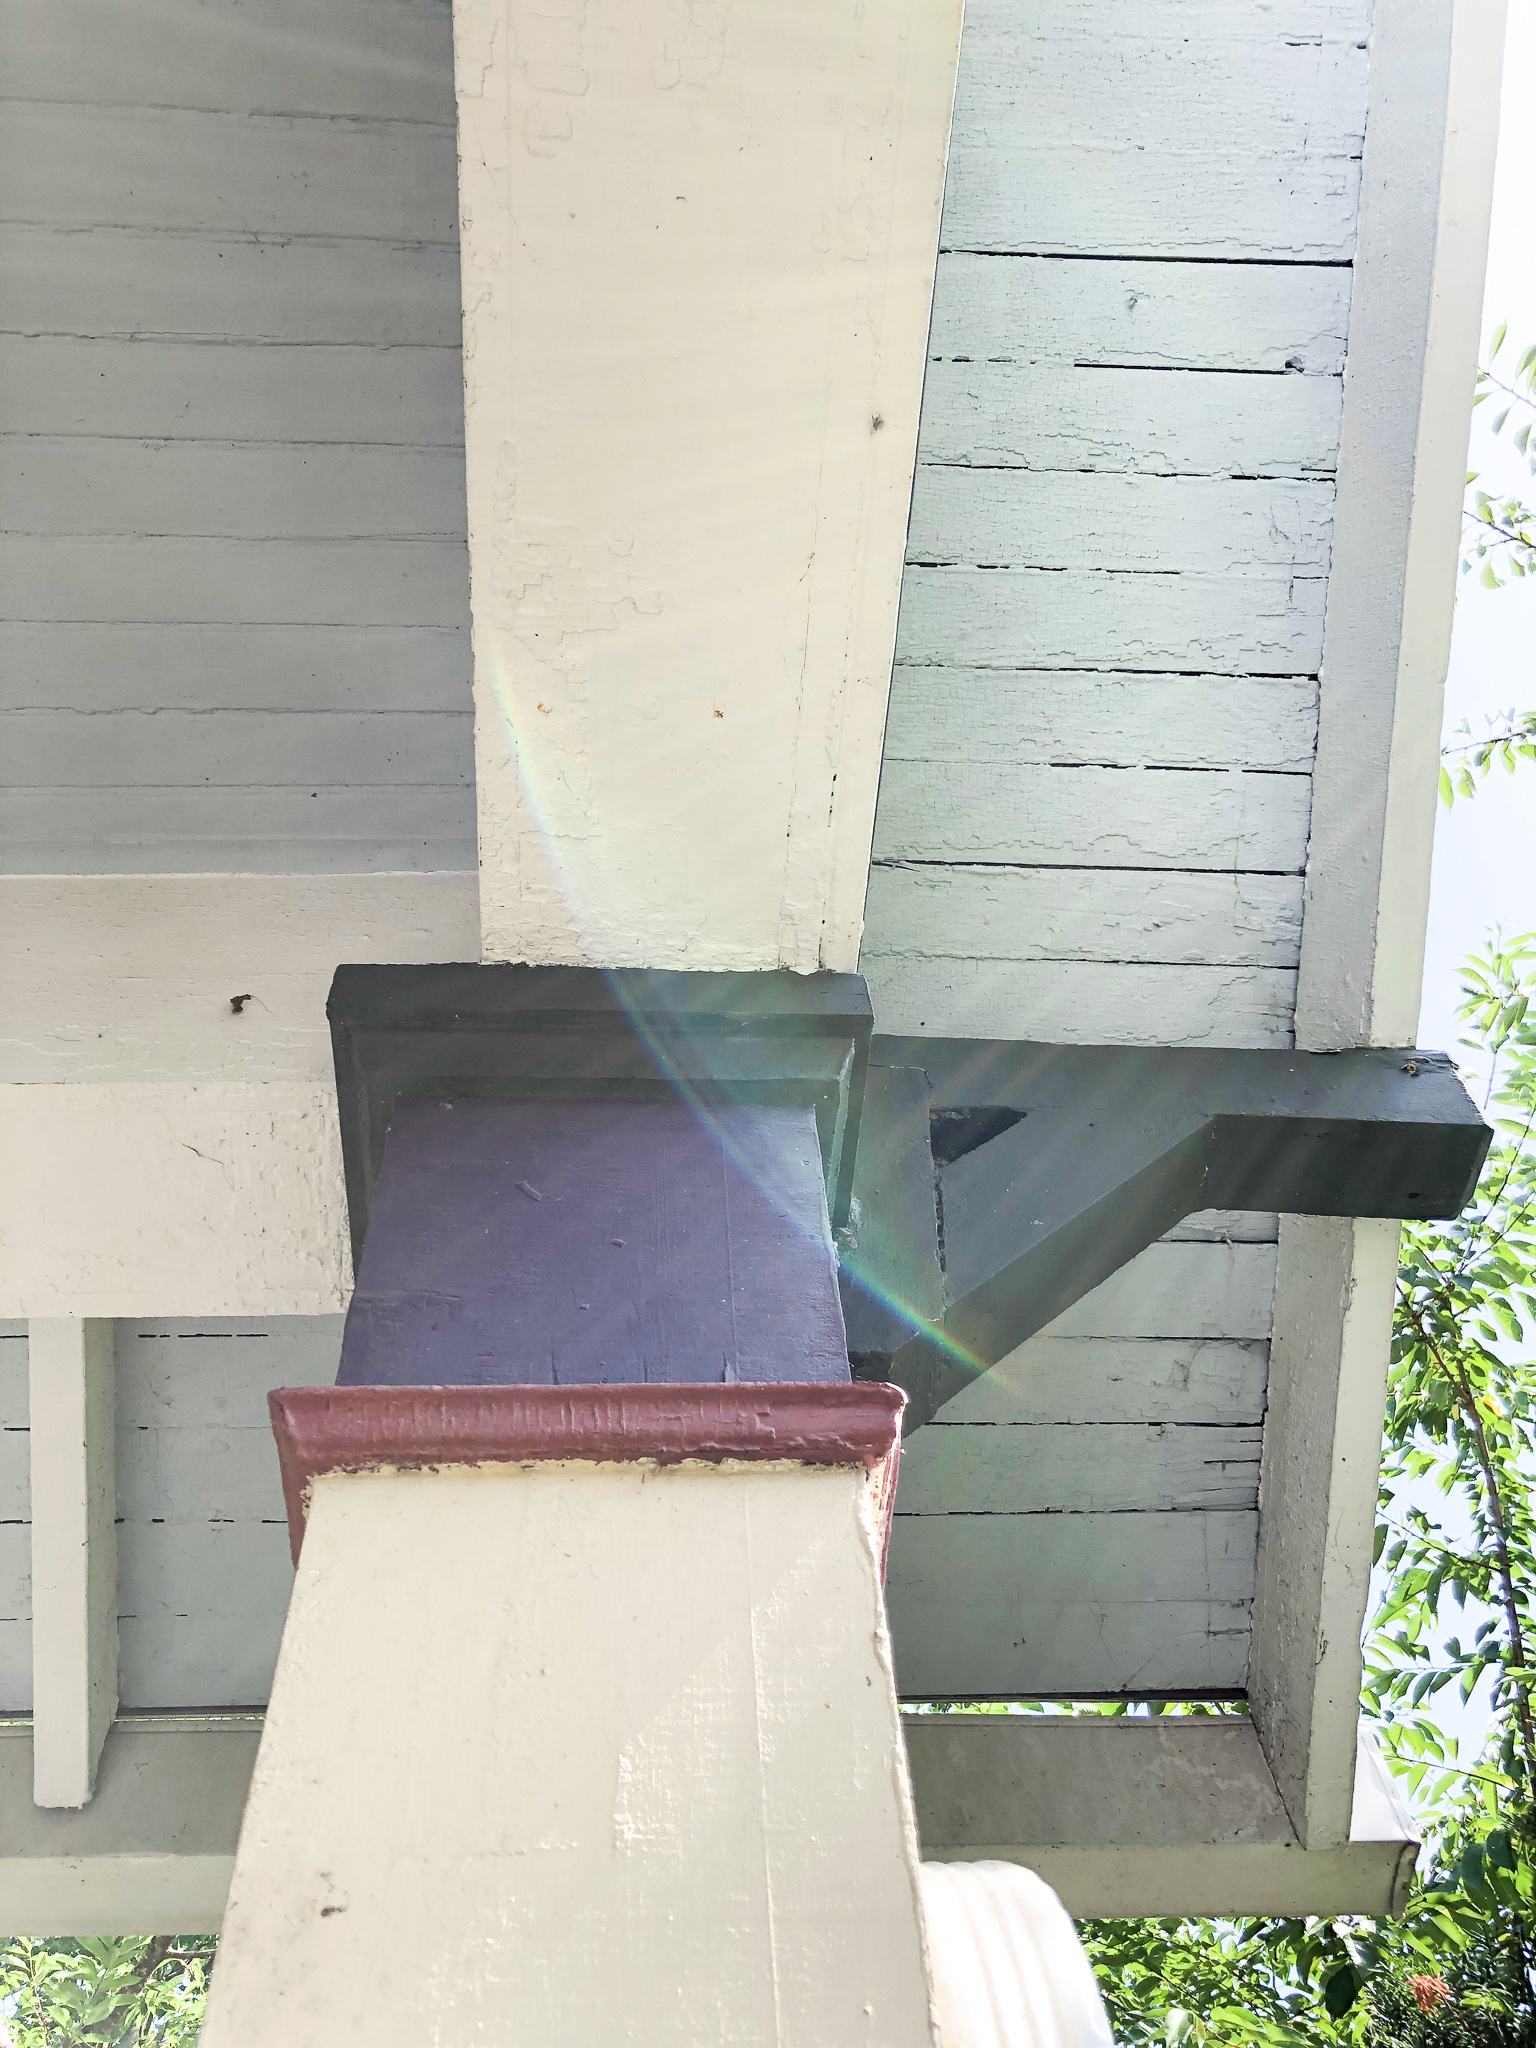 Exposed rafters are a common feature of California Bungalows. This architectural style was popular in the early 1900s all across America.